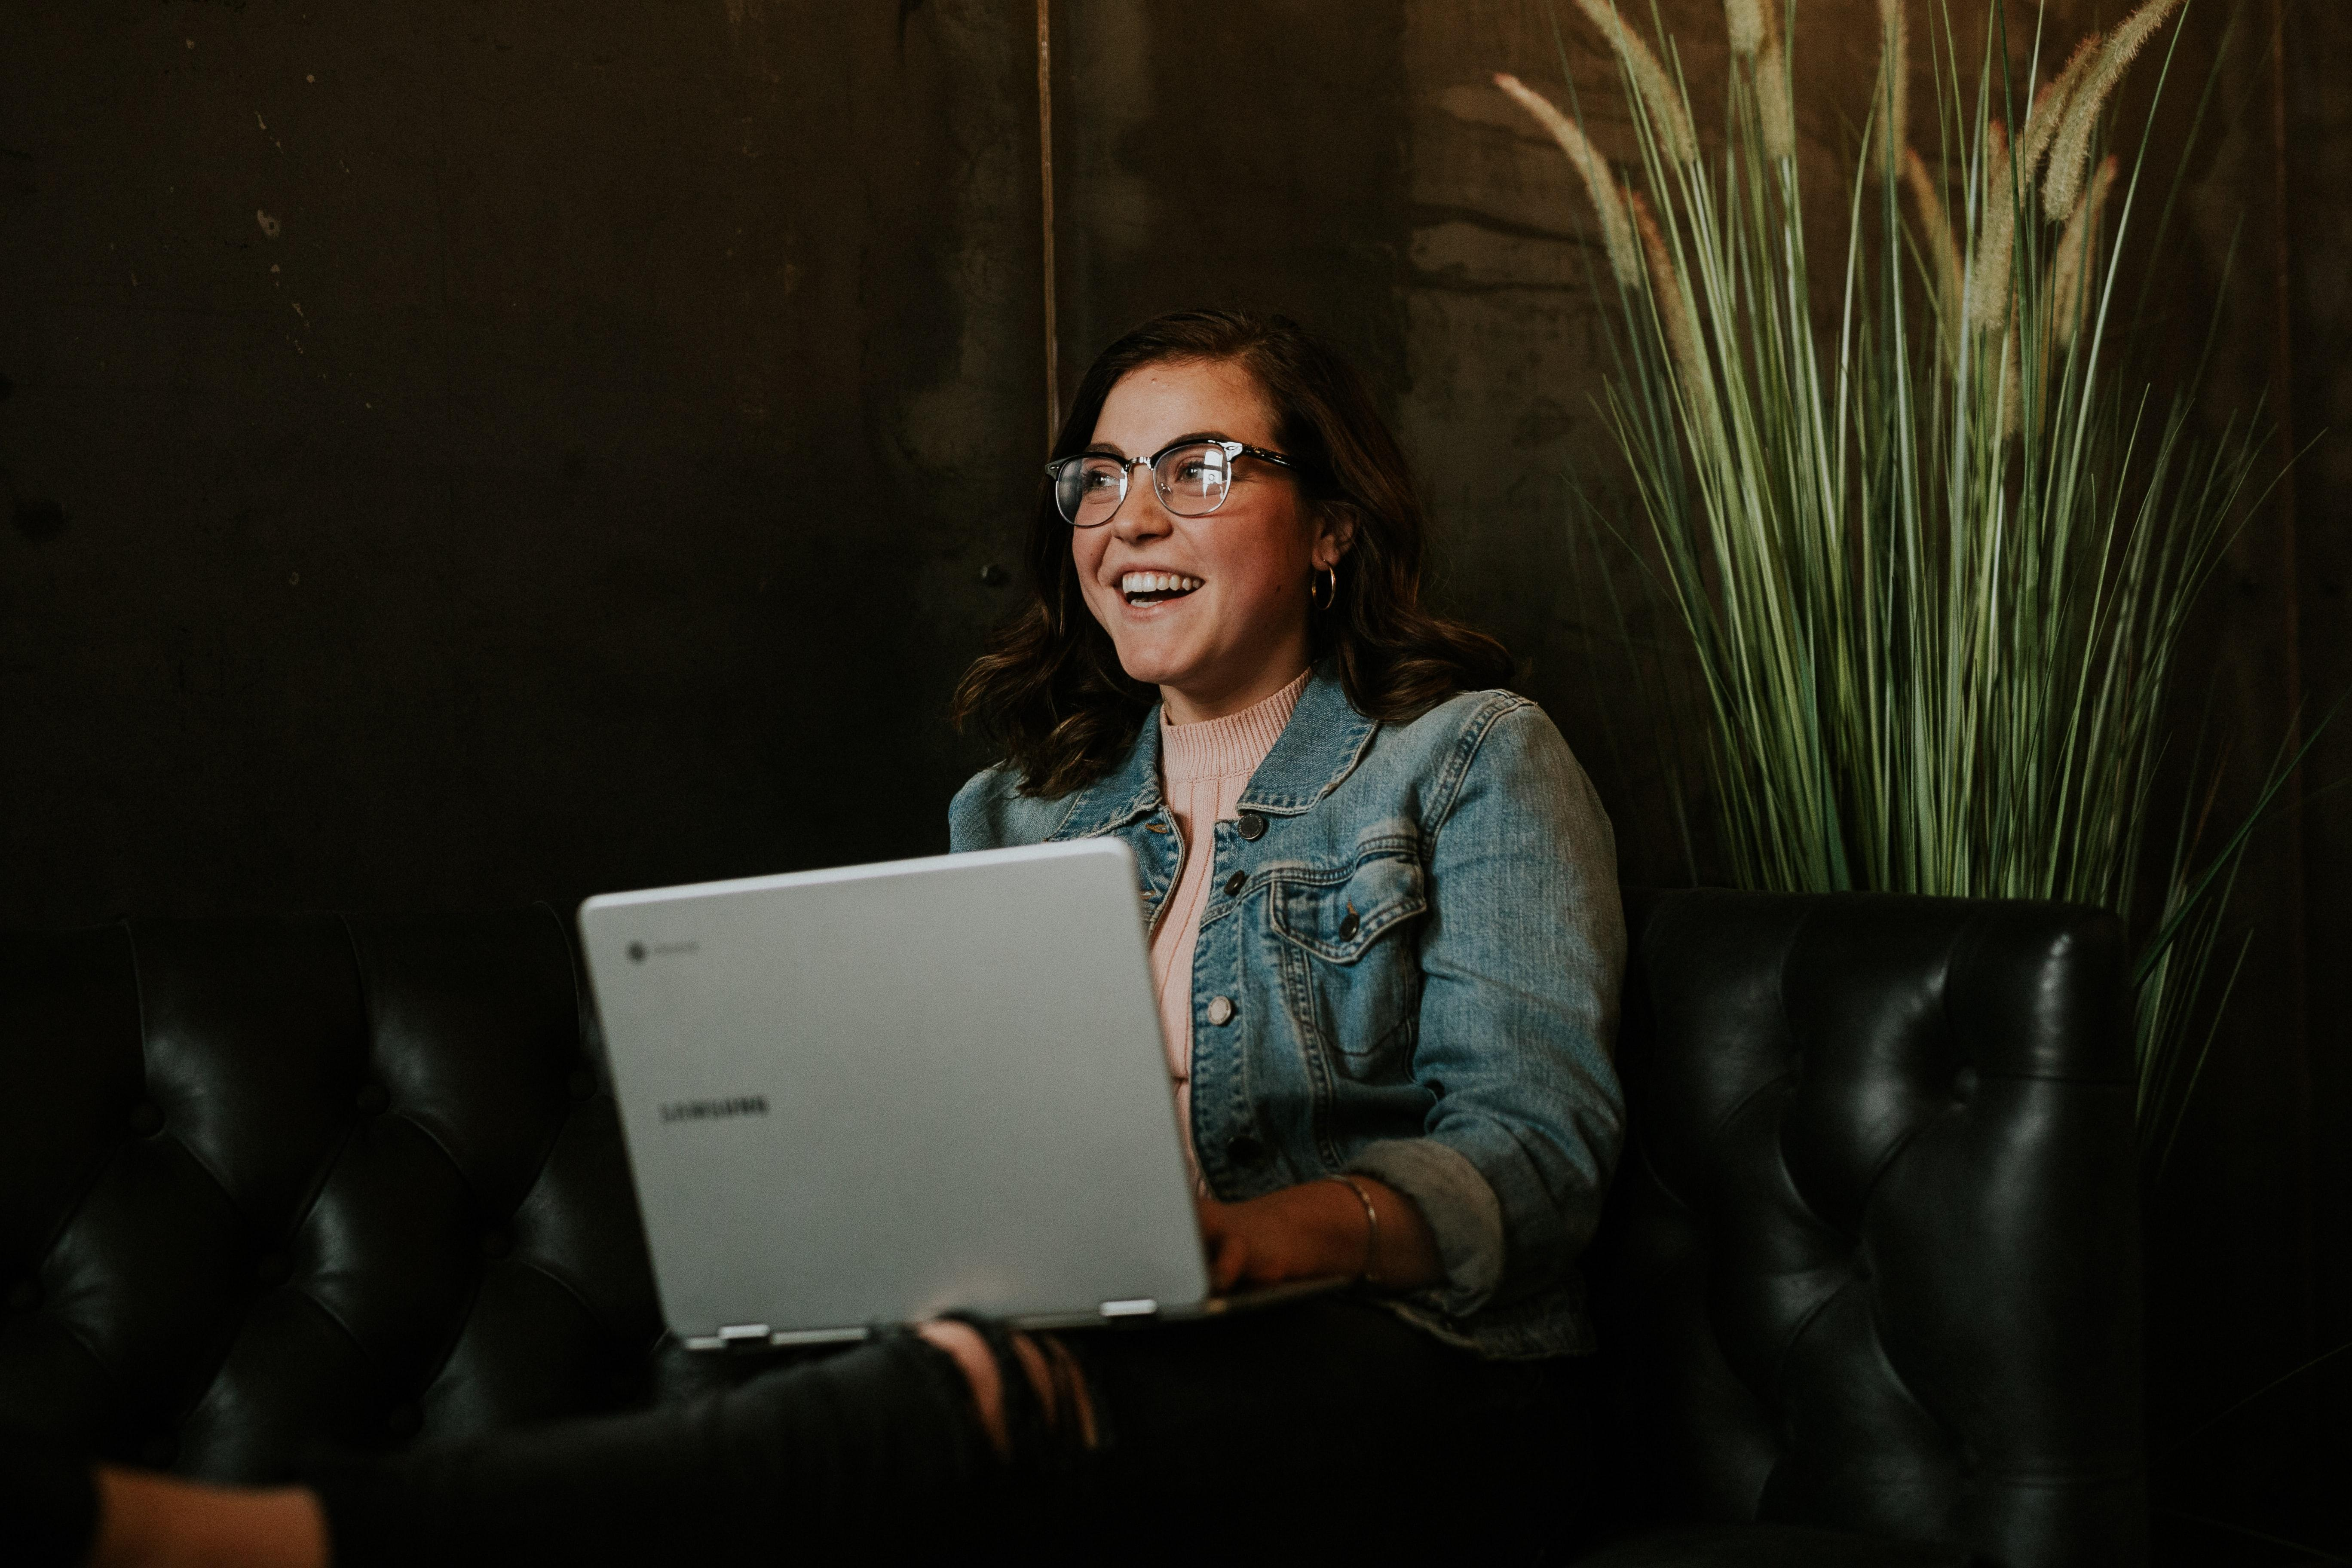 Photo of woman smiling behind computer